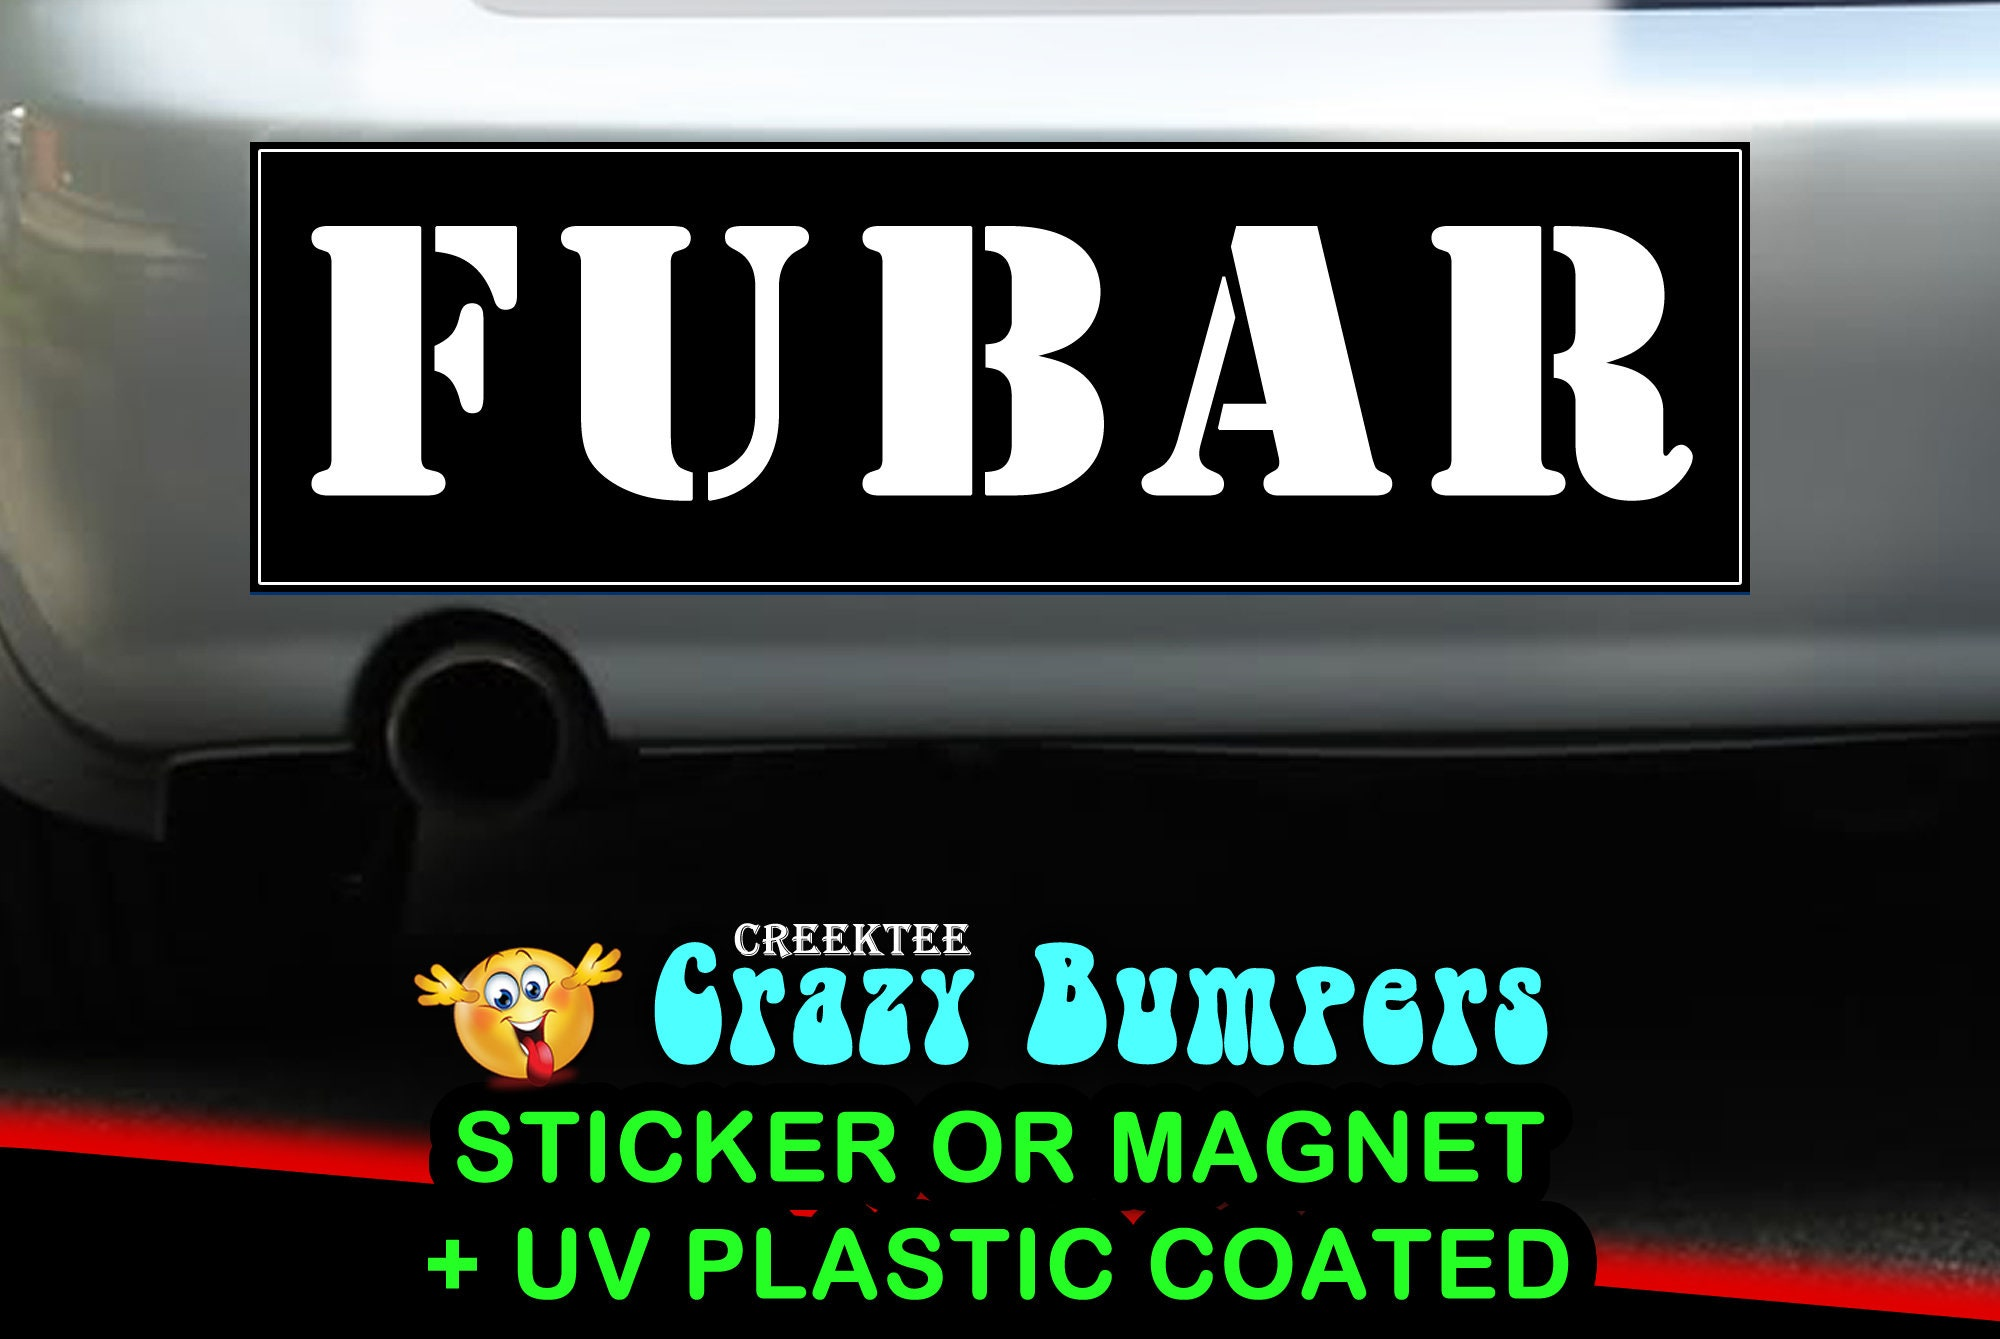 FUBAR 10 x 3 Bumper Sticker - Custom changes and orders welcomed!